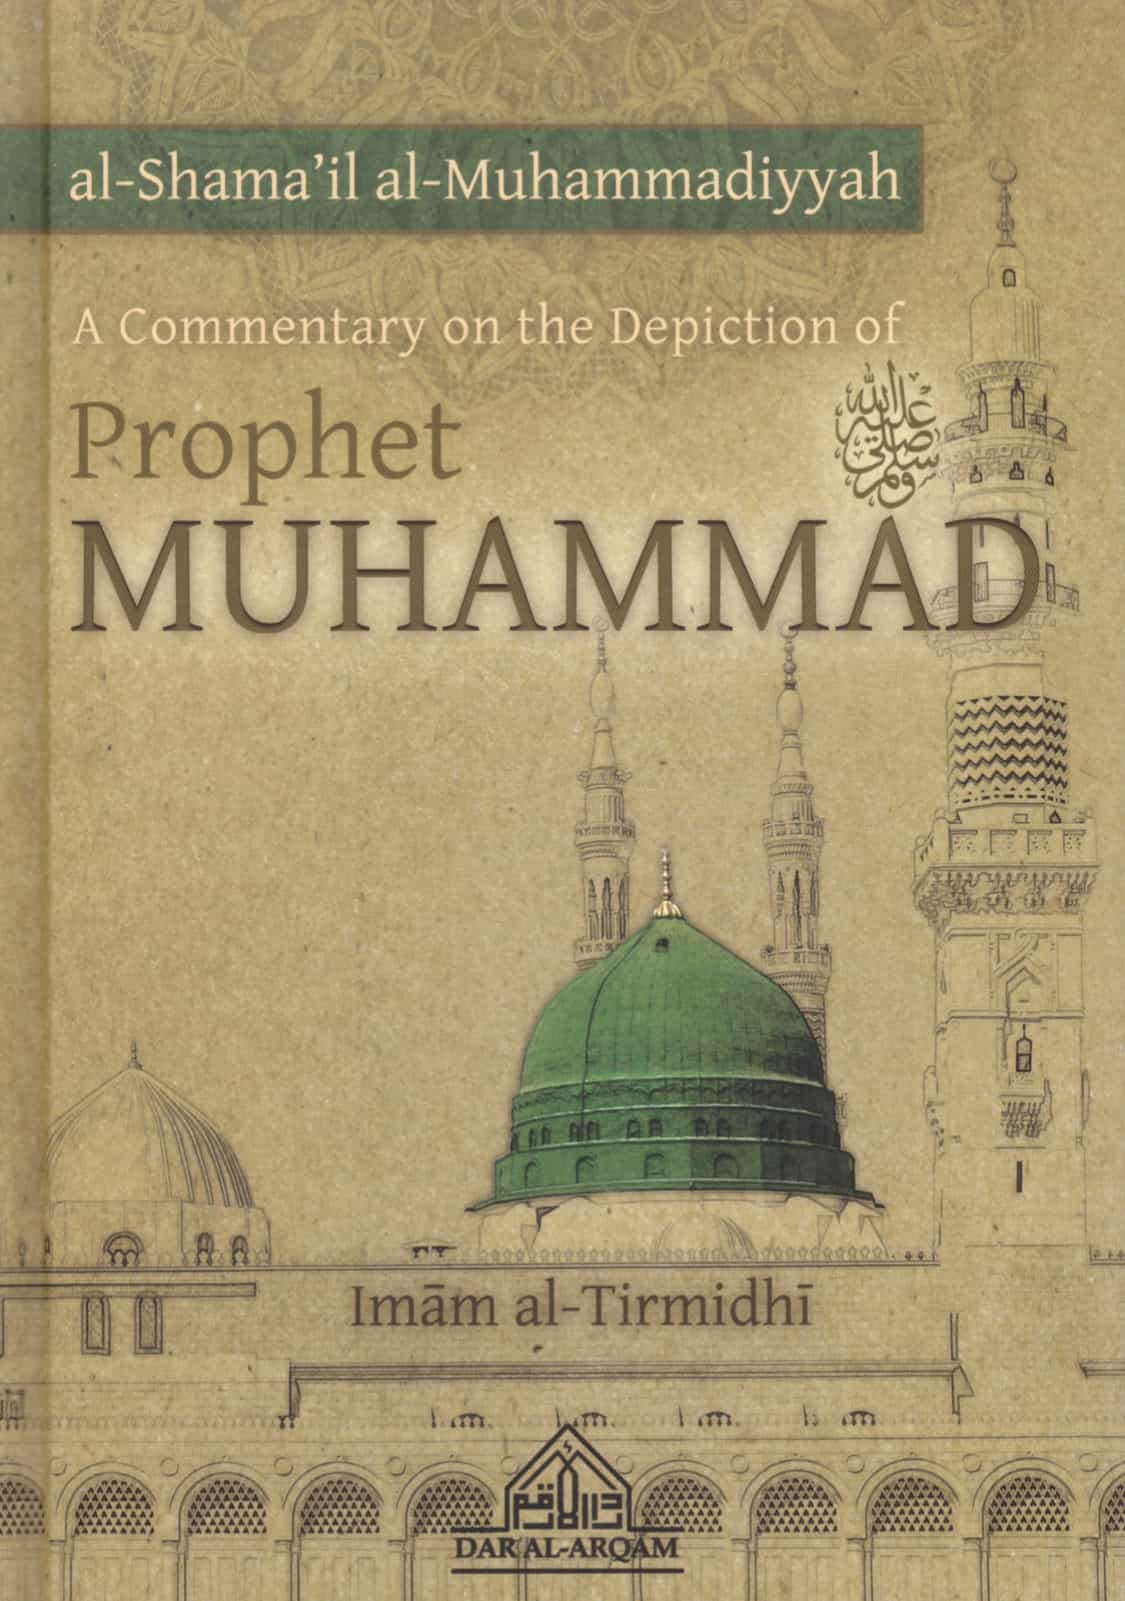 A Commentary On The Depiction Of The Prophet (Dar Al Arqam)